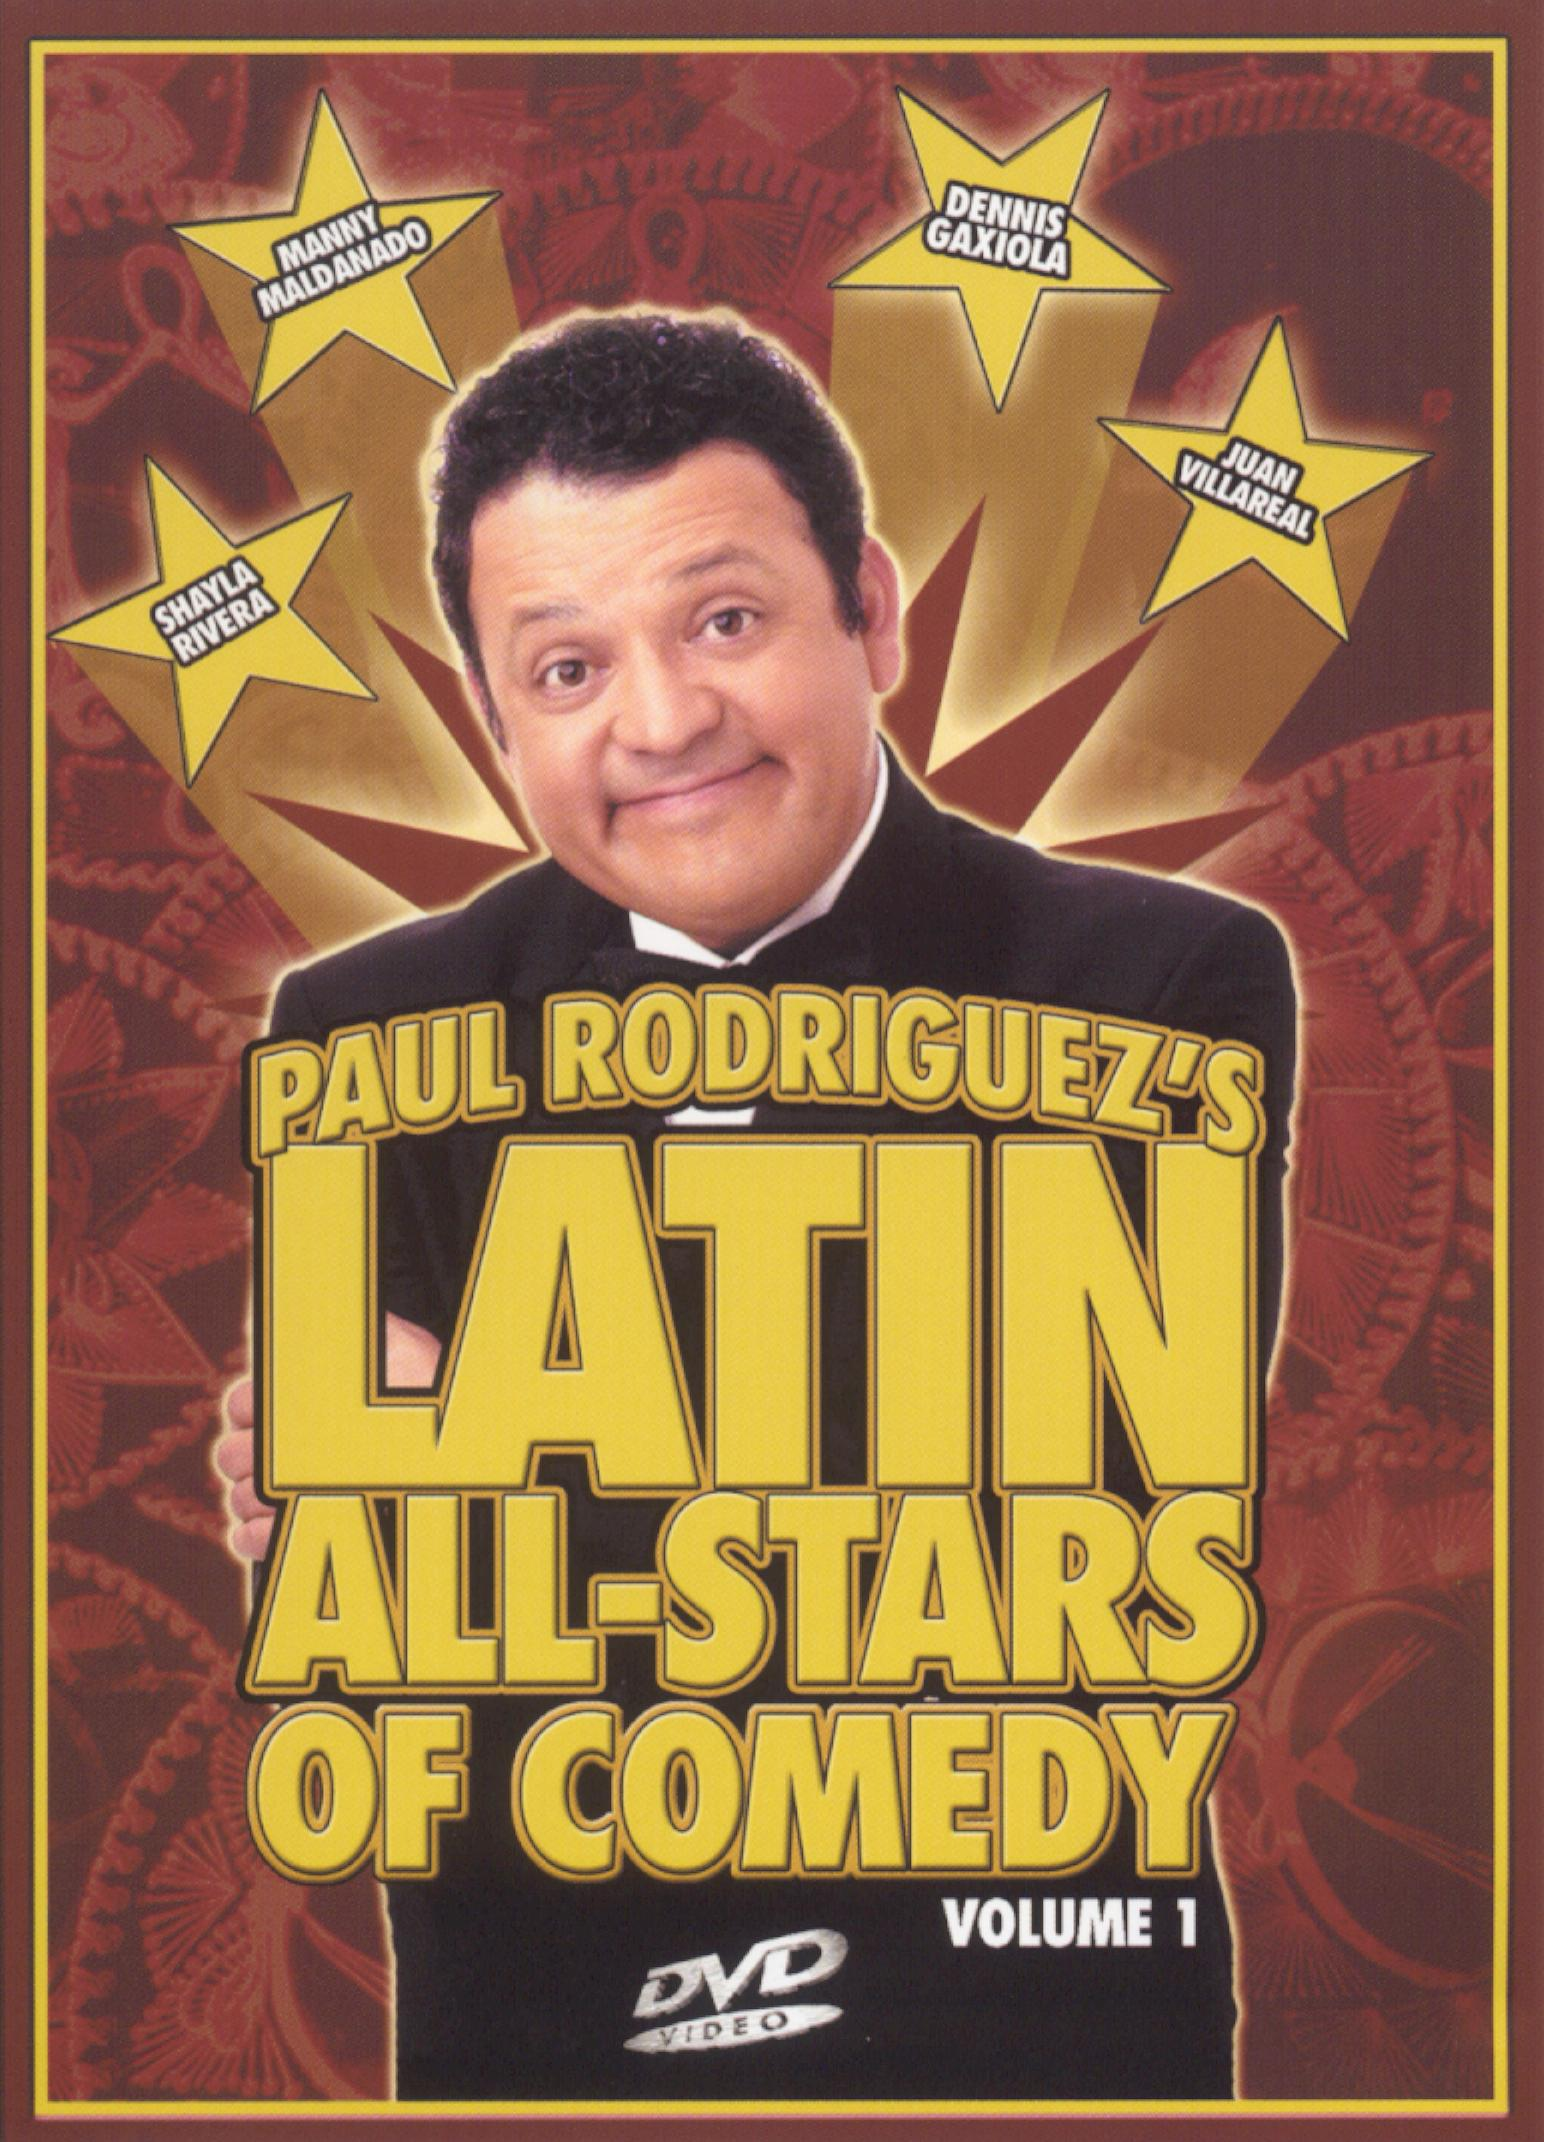 Paul Rodriguez's Latin All Stars of Comedy, Vol. 1